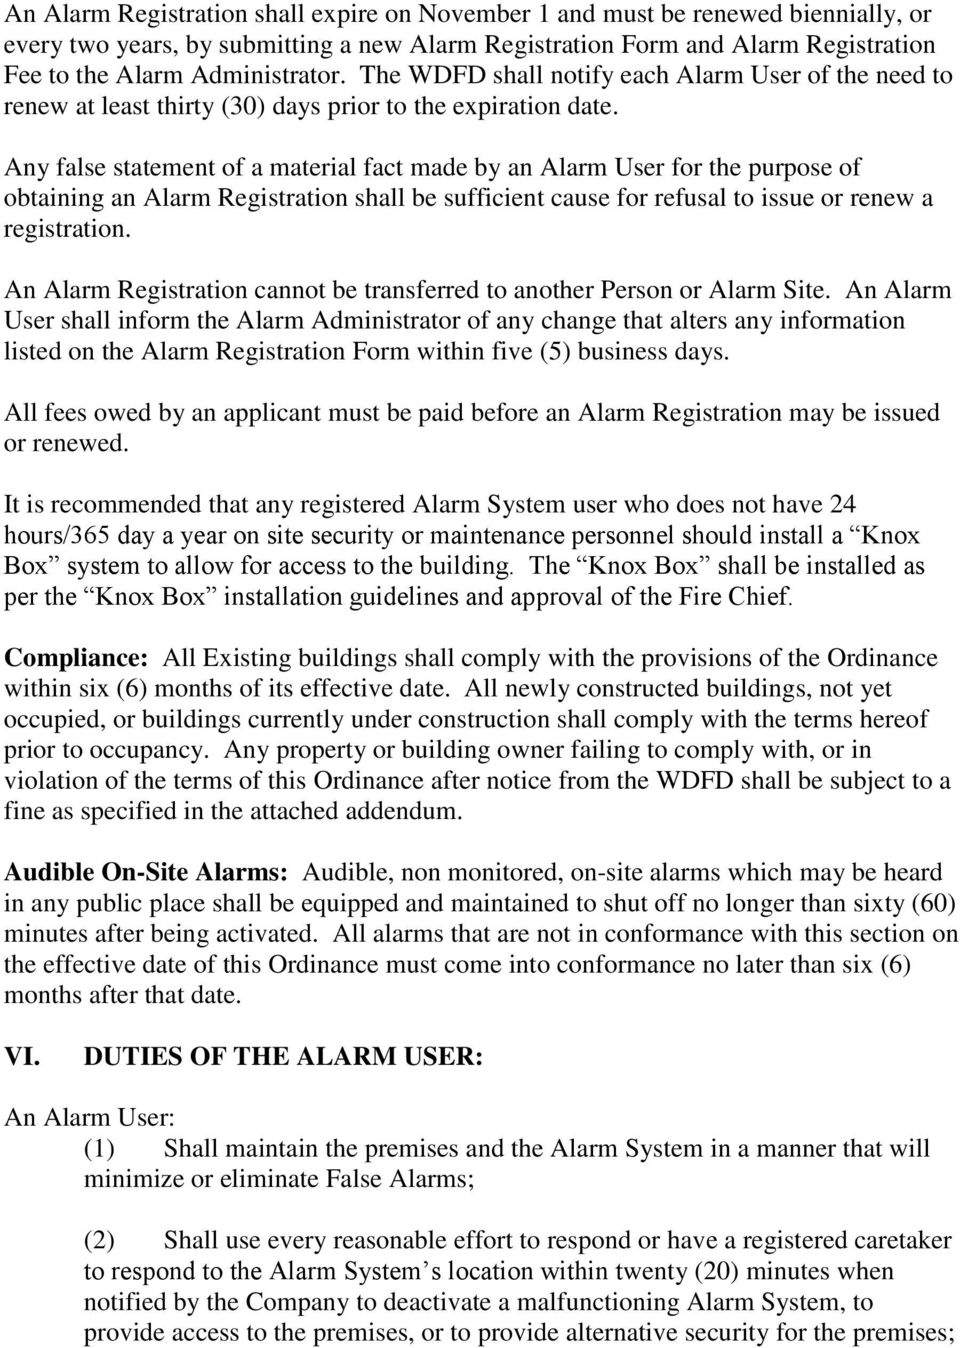 Any false statement of a material fact made by an Alarm User for the purpose of obtaining an Alarm Registration shall be sufficient cause for refusal to issue or renew a registration.